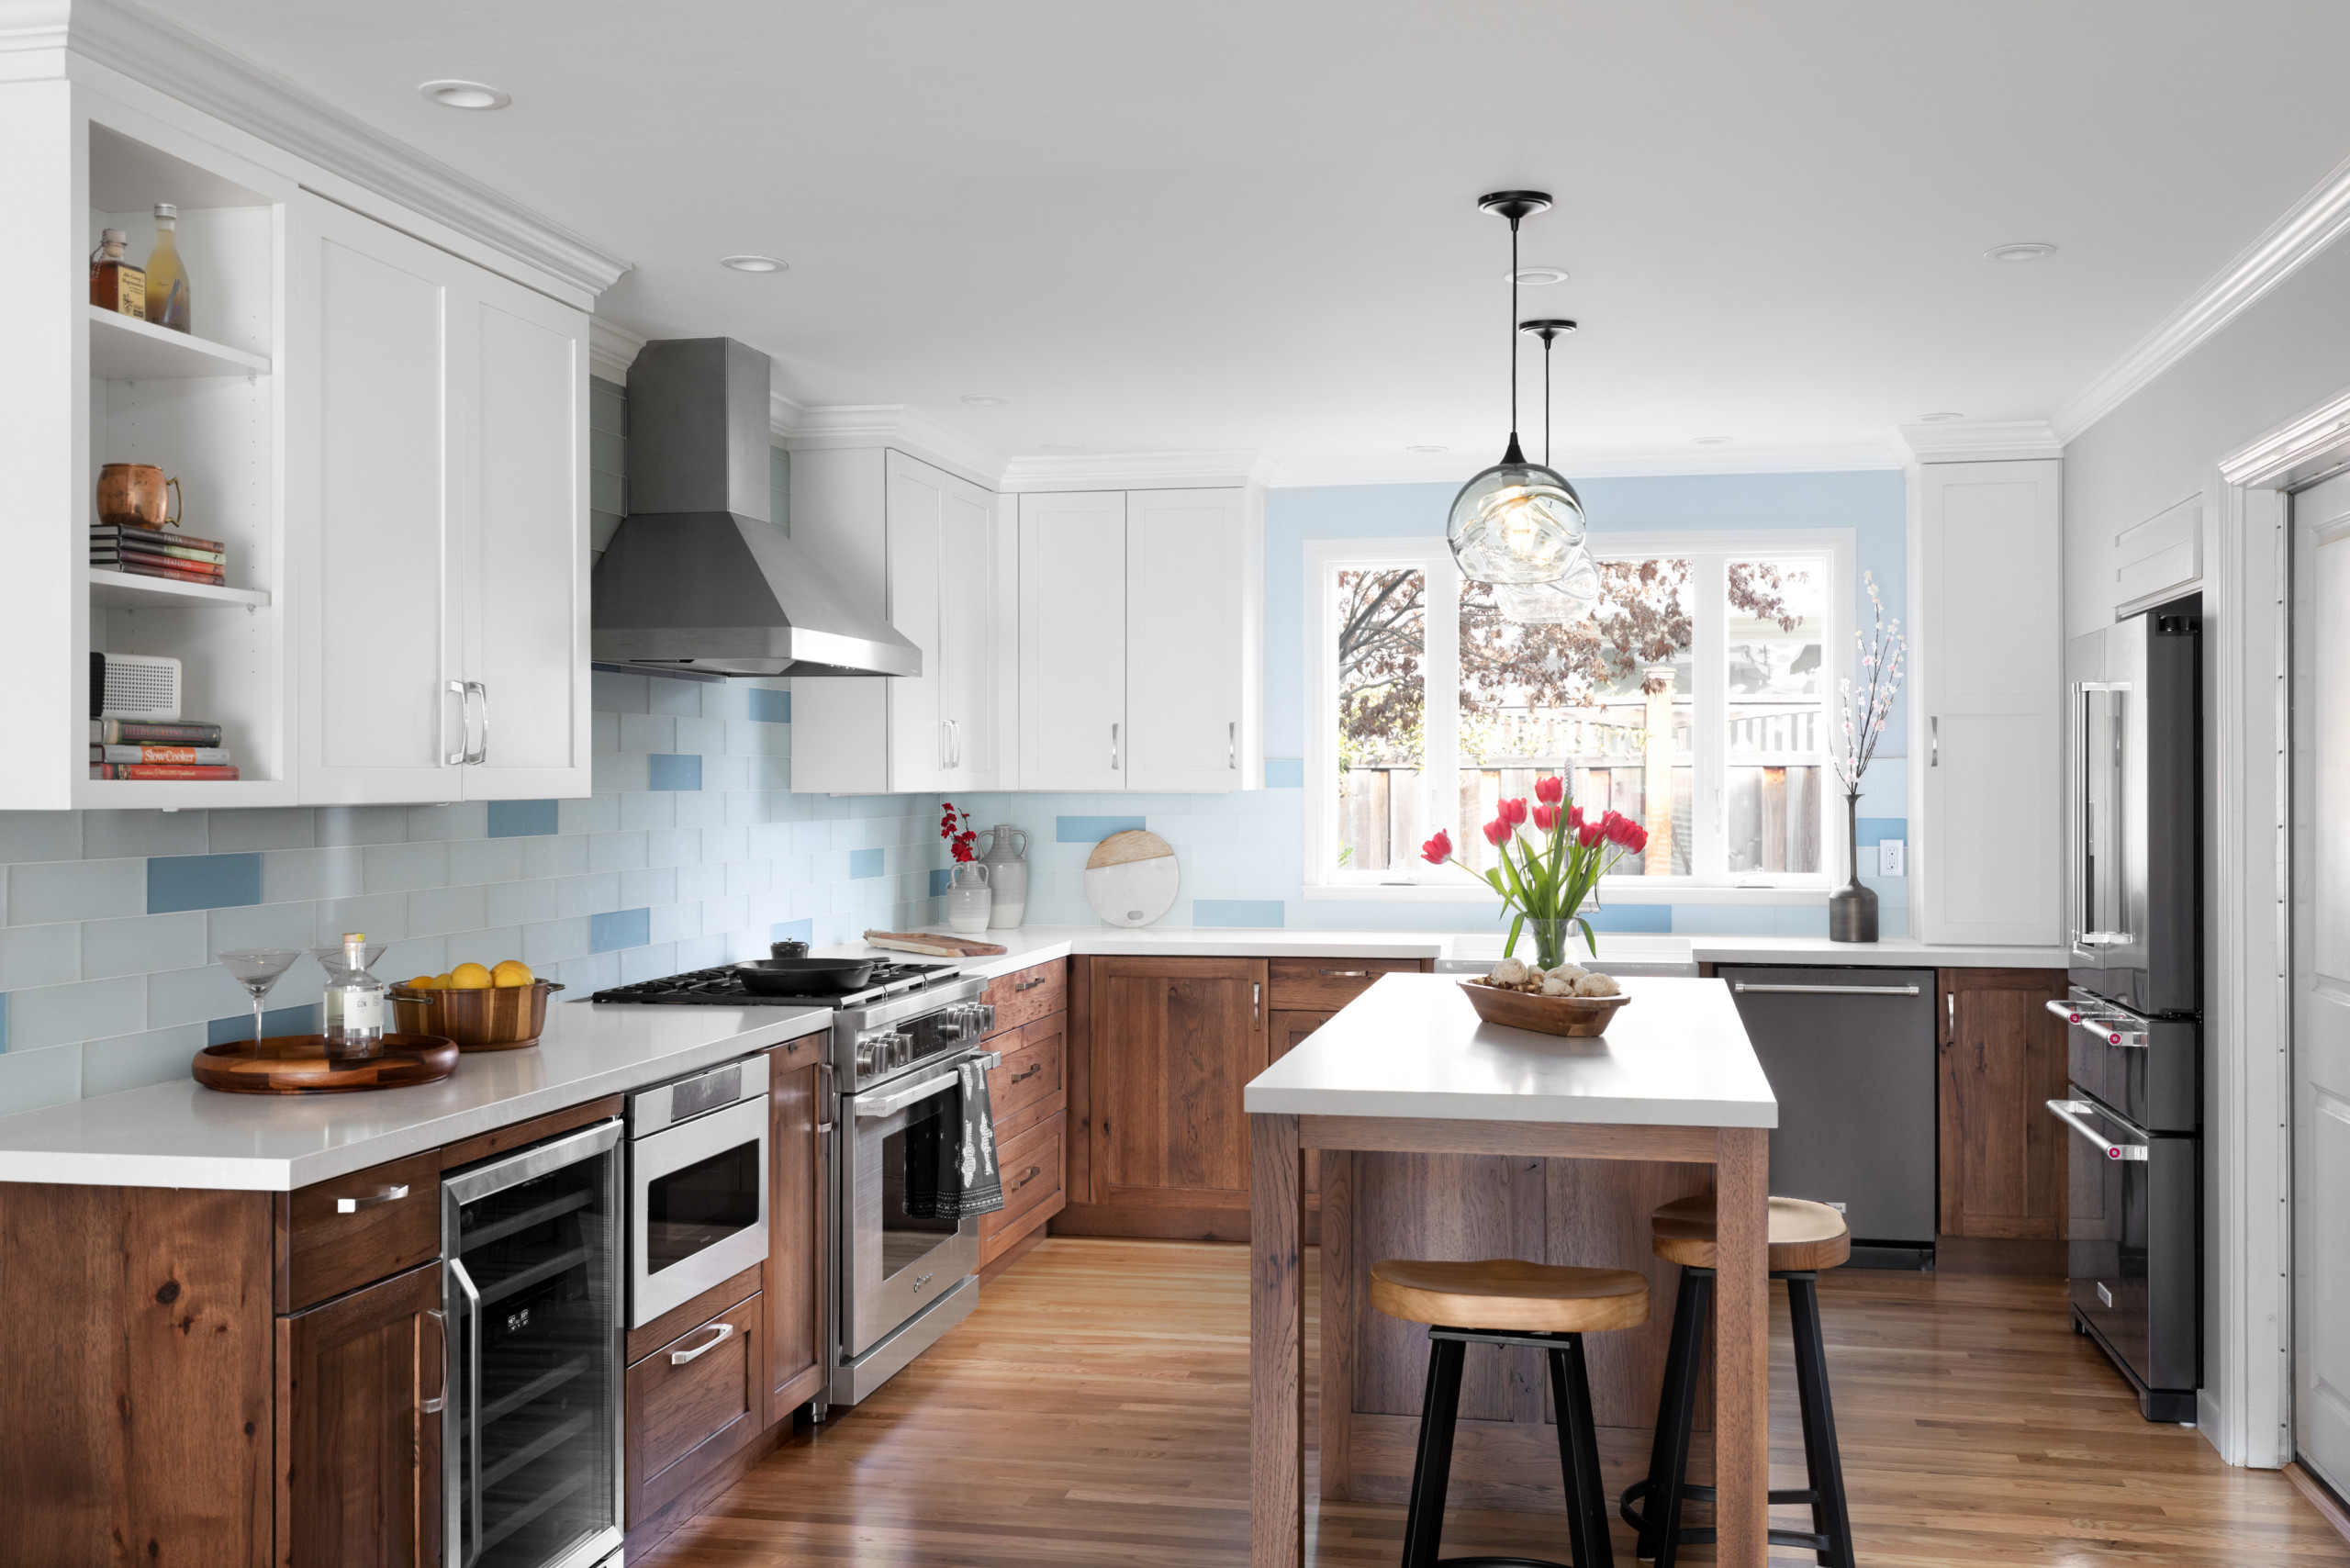 75 Beautiful Transitional Kitchen Pictures Ideas November 2020 Houzz